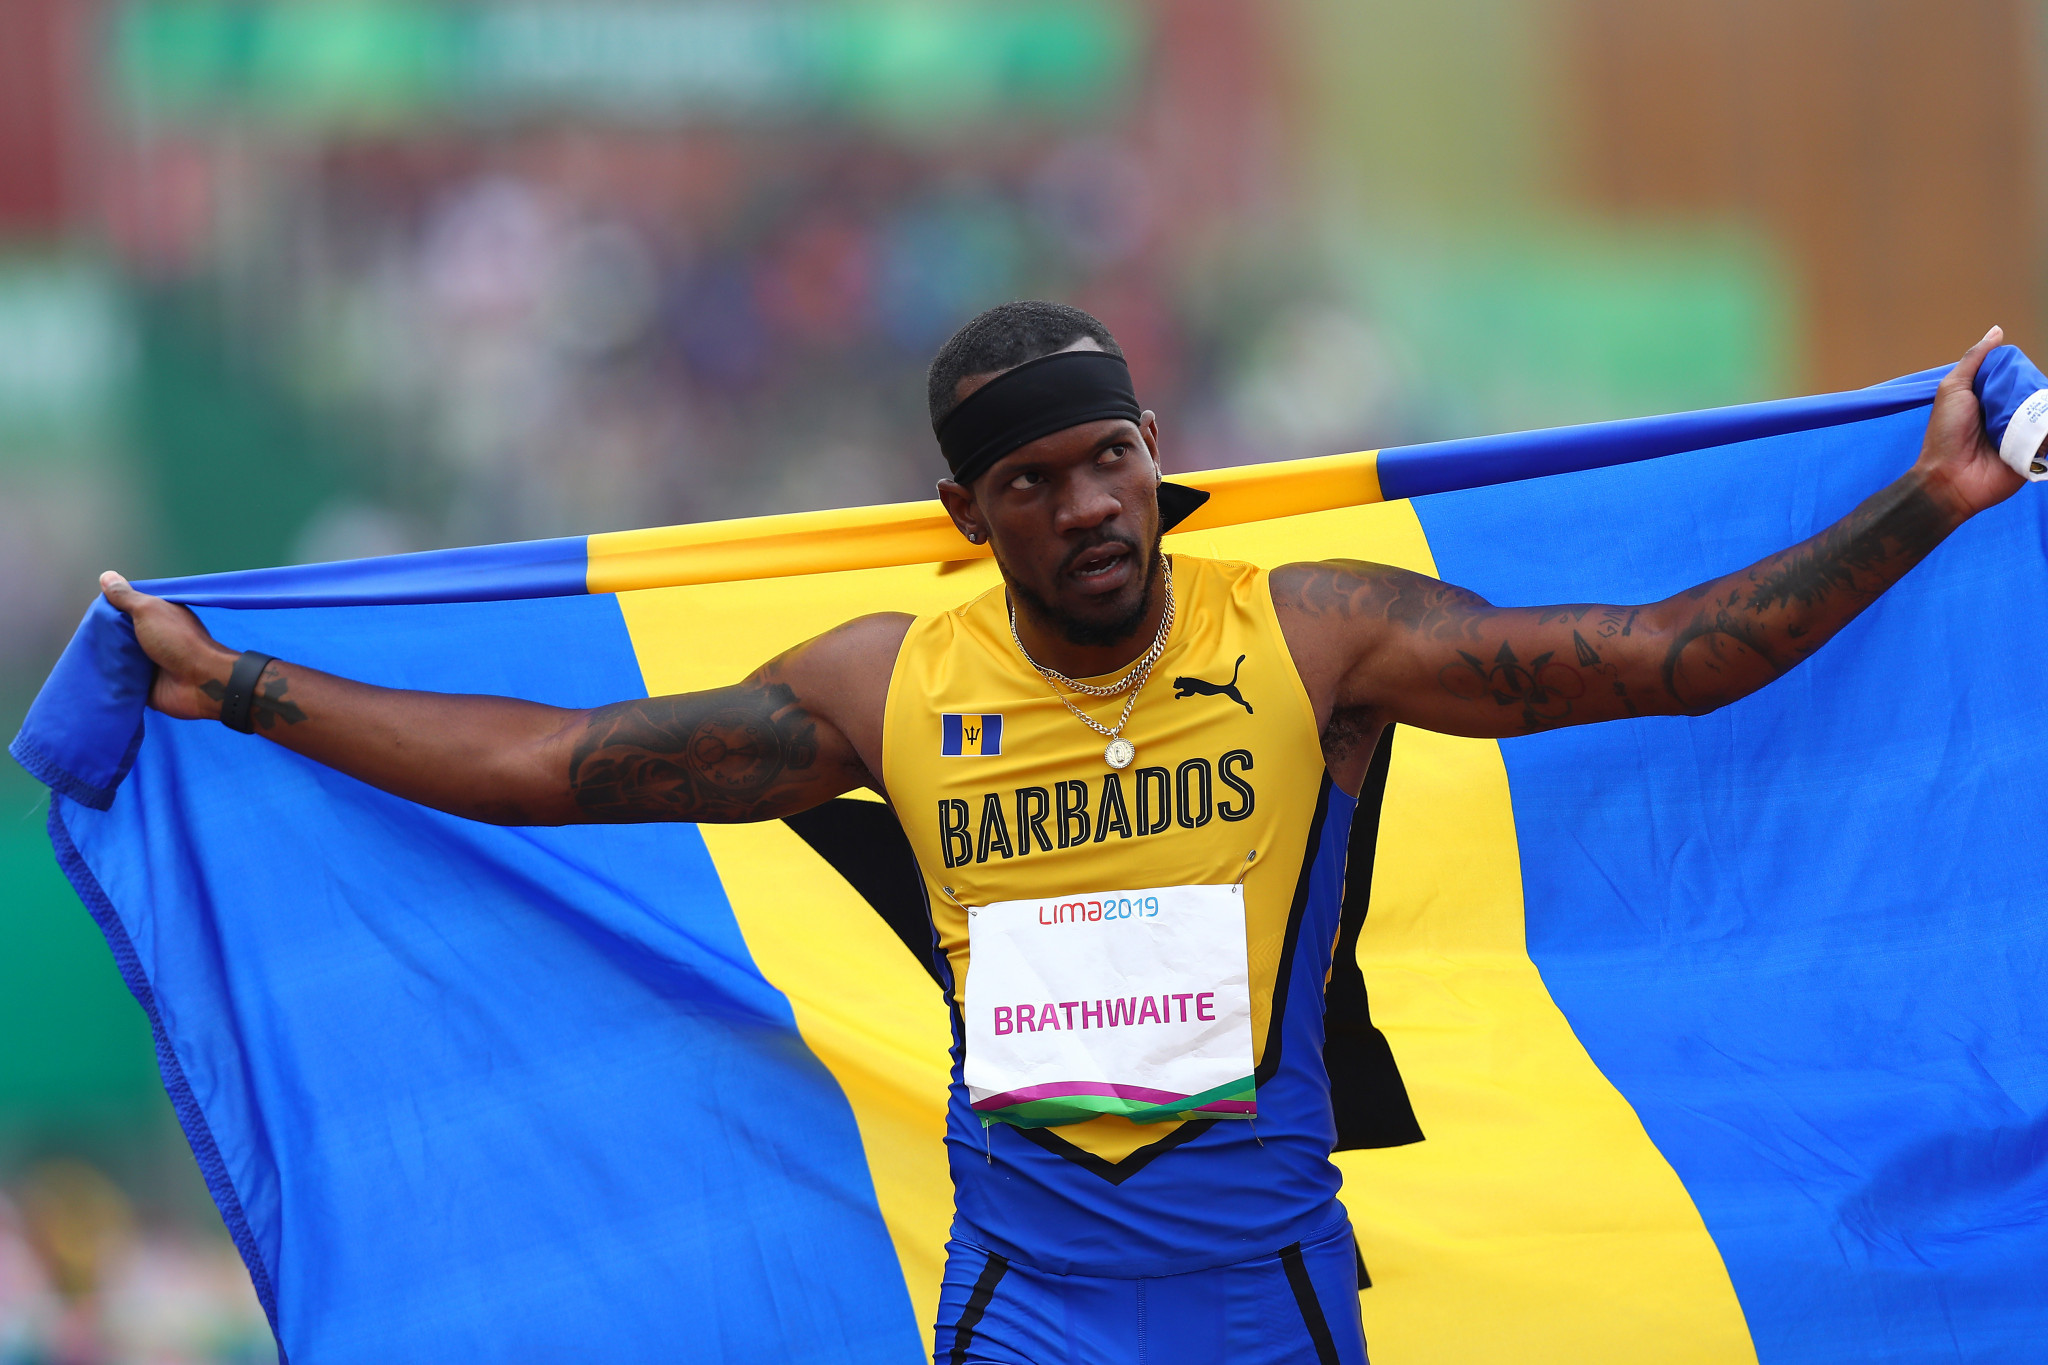 Shane Brathwaite won Barbados' first gold medal of the Games ©Getty Images